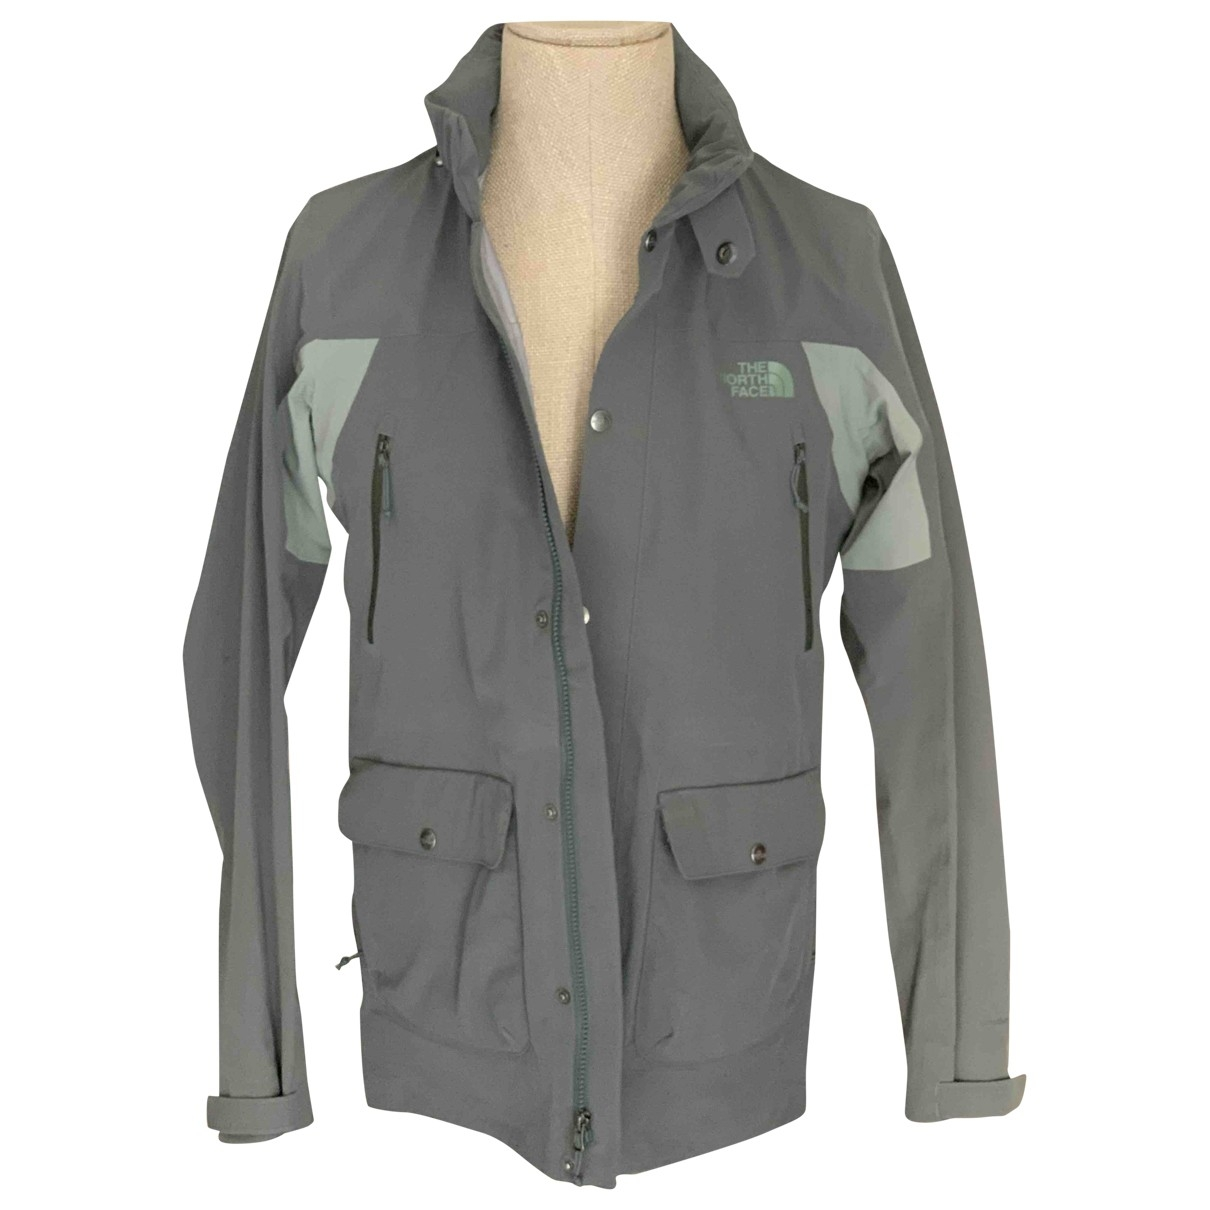 The North Face \N Grey jacket  for Men S International